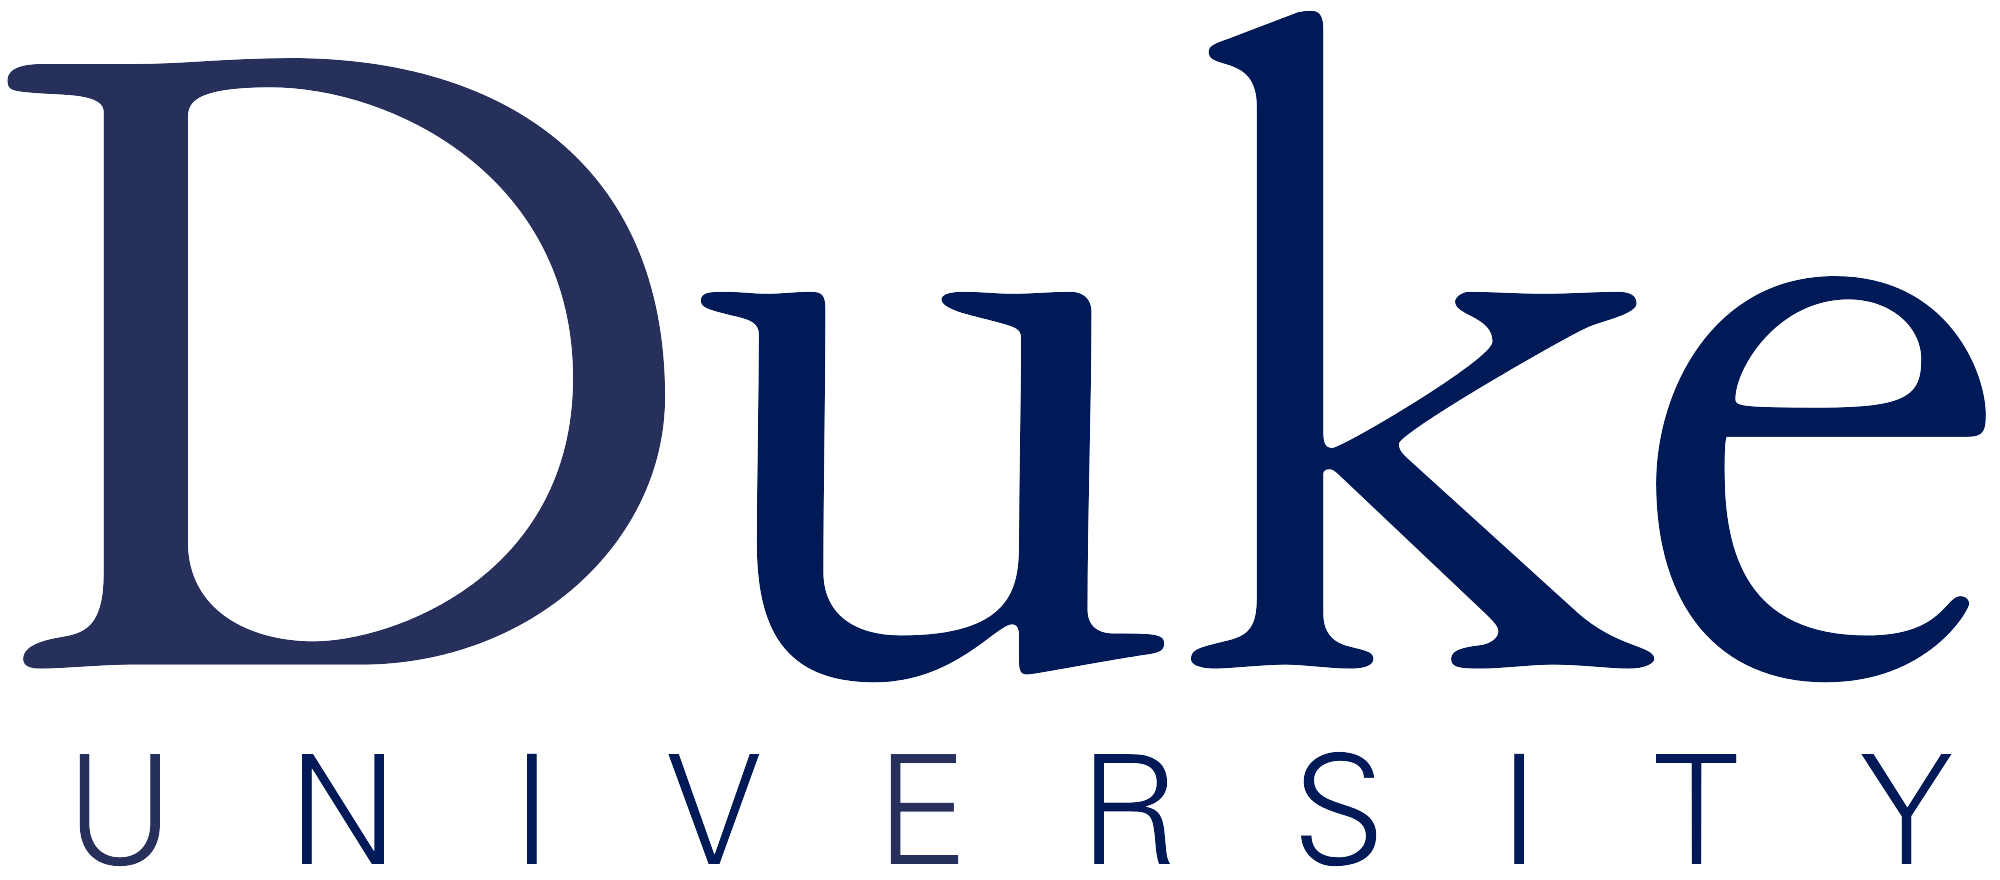 professional writing Duke logo